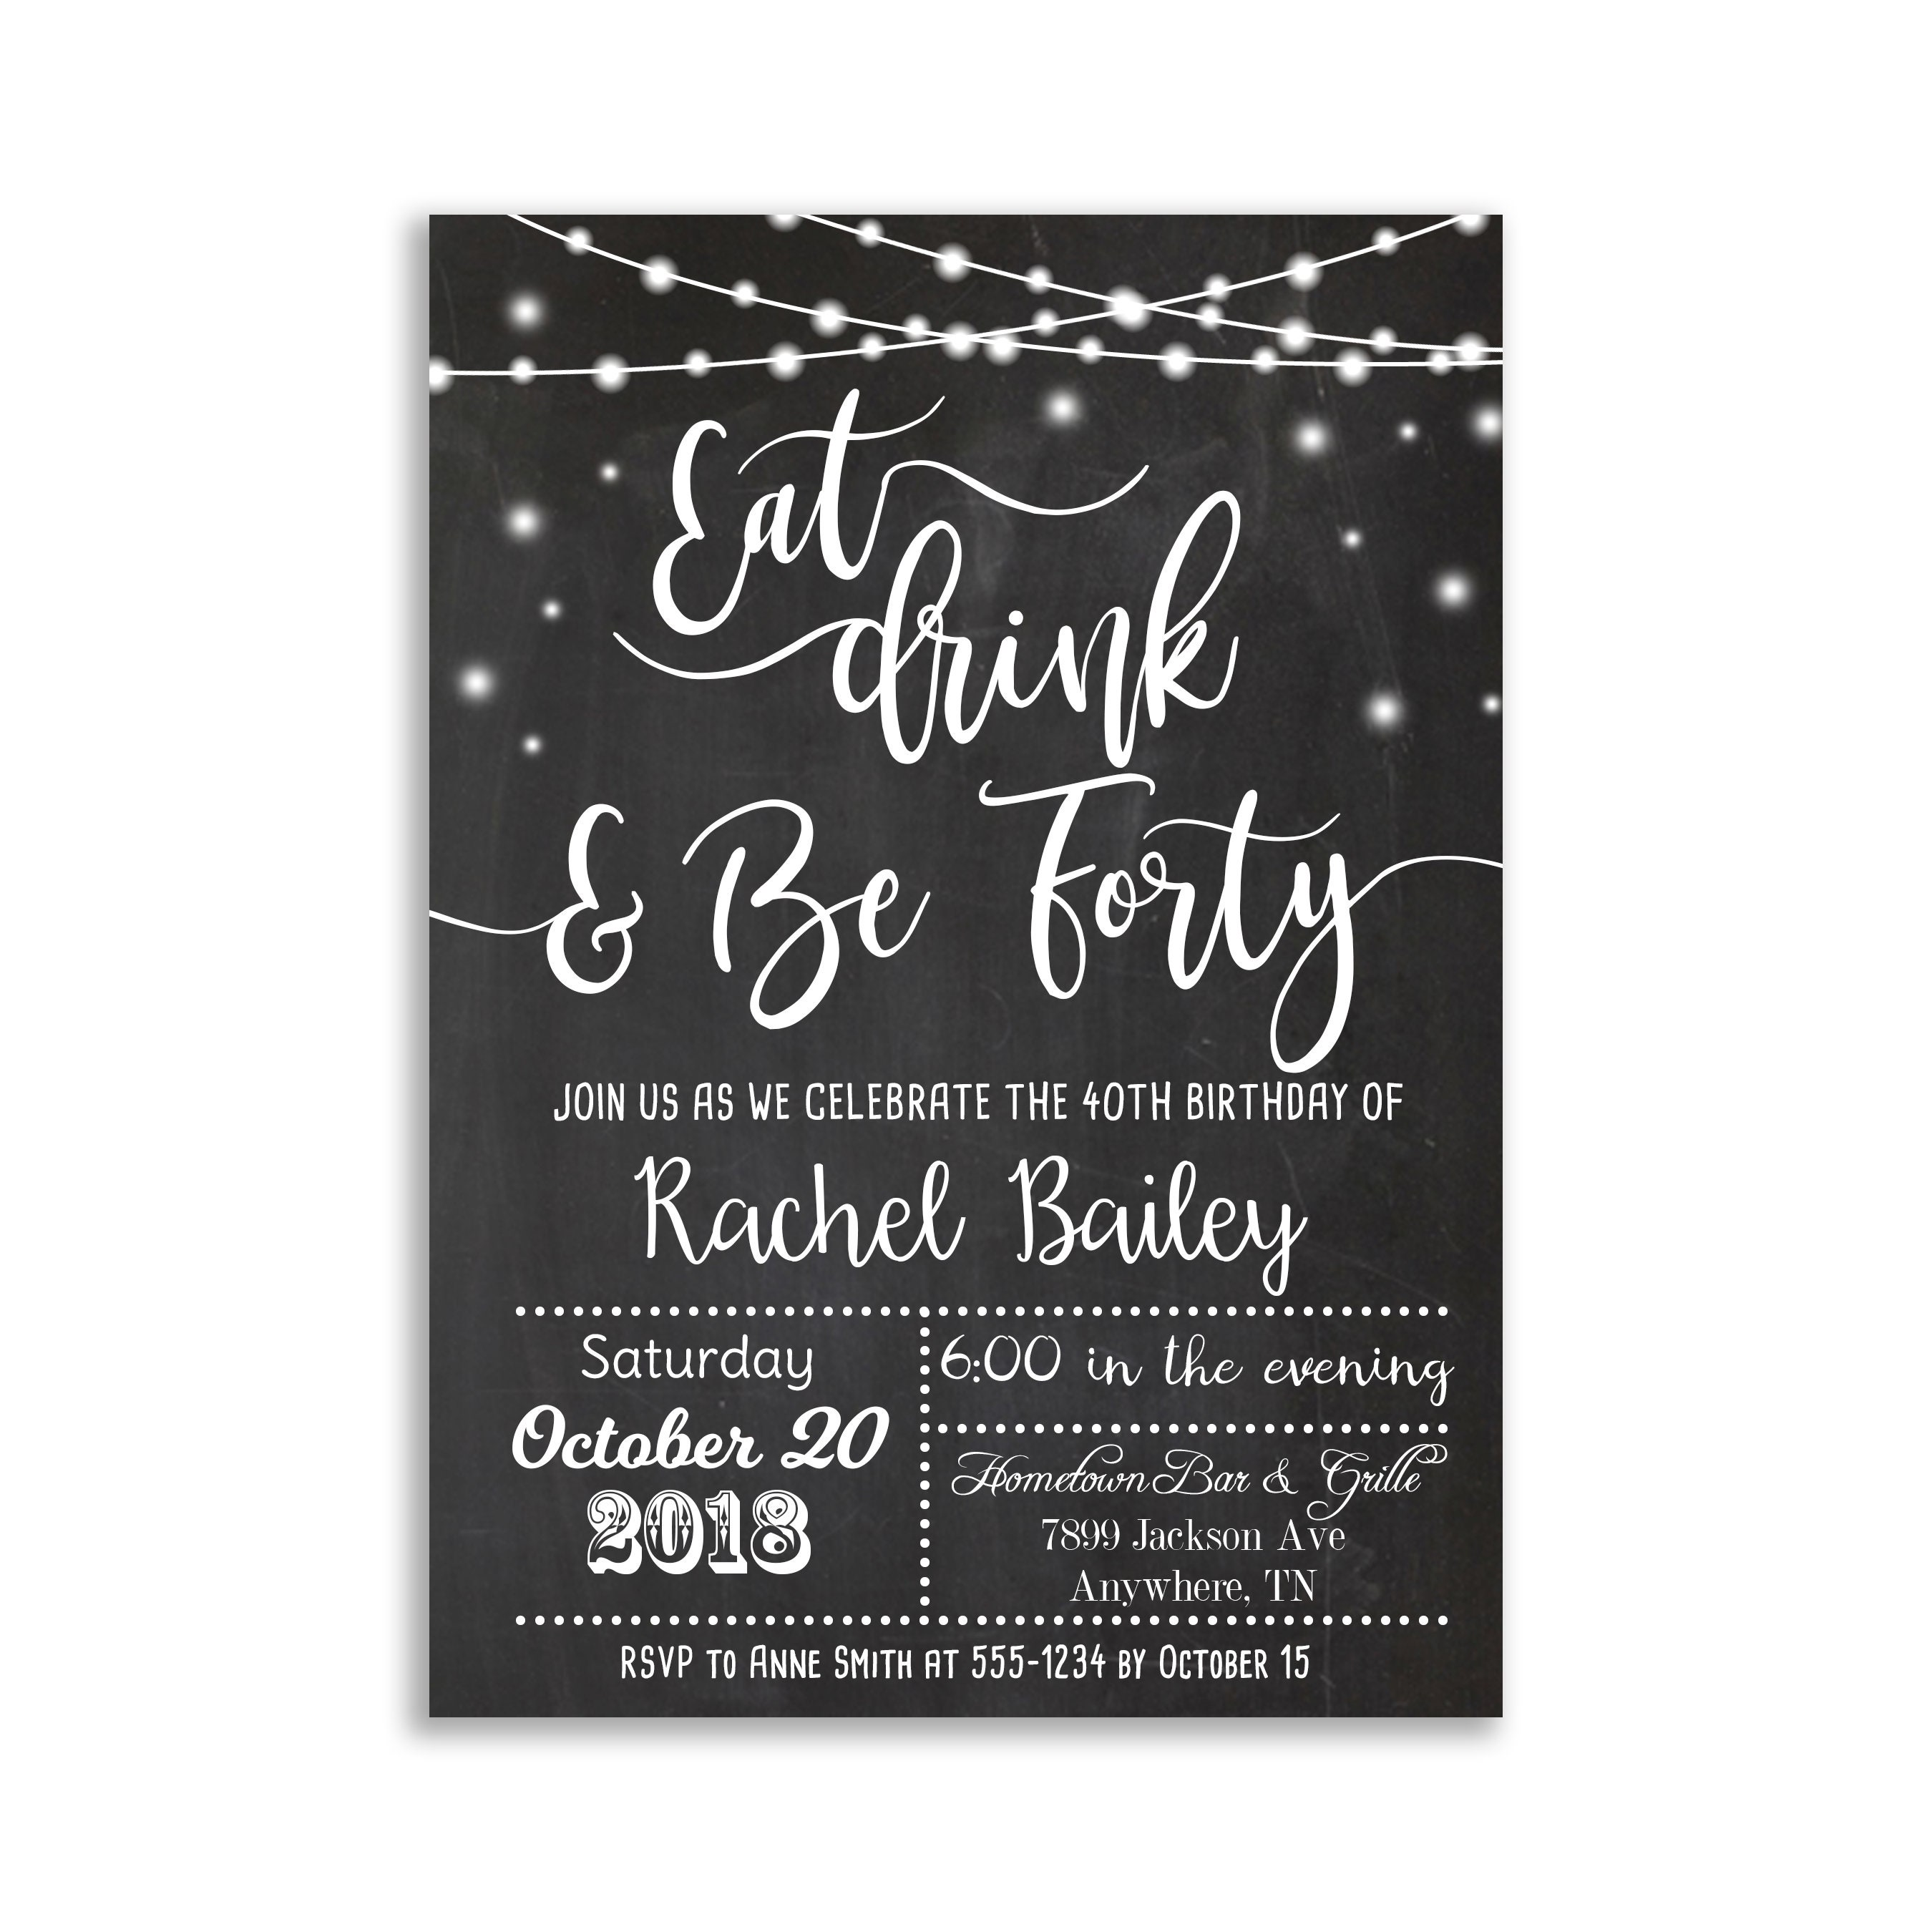 Eat Drink And Be Forty Birthday Invitation 40th 50th 60th